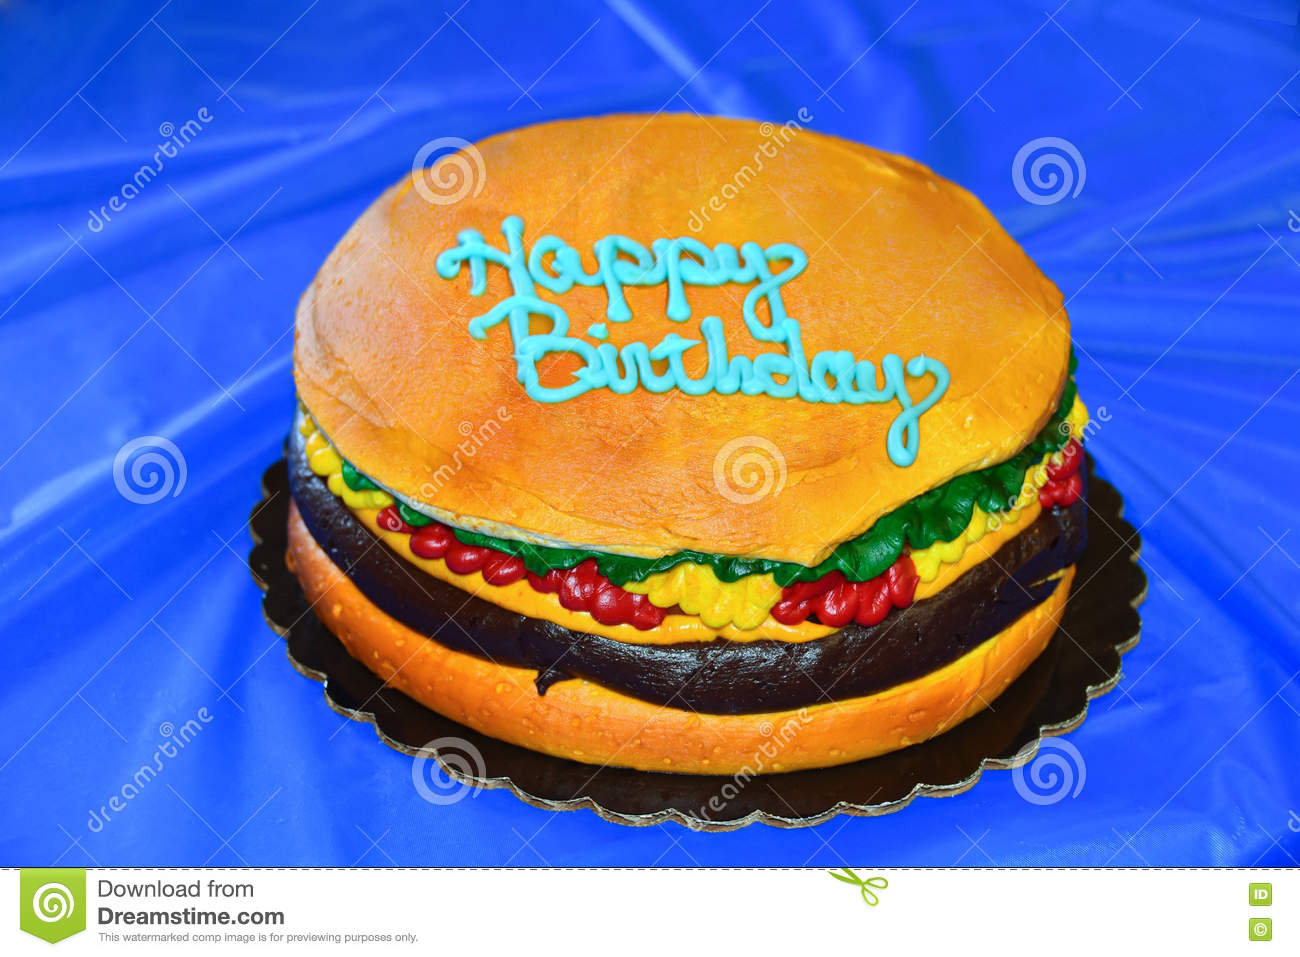 Superb Hamburger Birthday Cake Stock Photo Image Of Relish 73047492 Funny Birthday Cards Online Aeocydamsfinfo